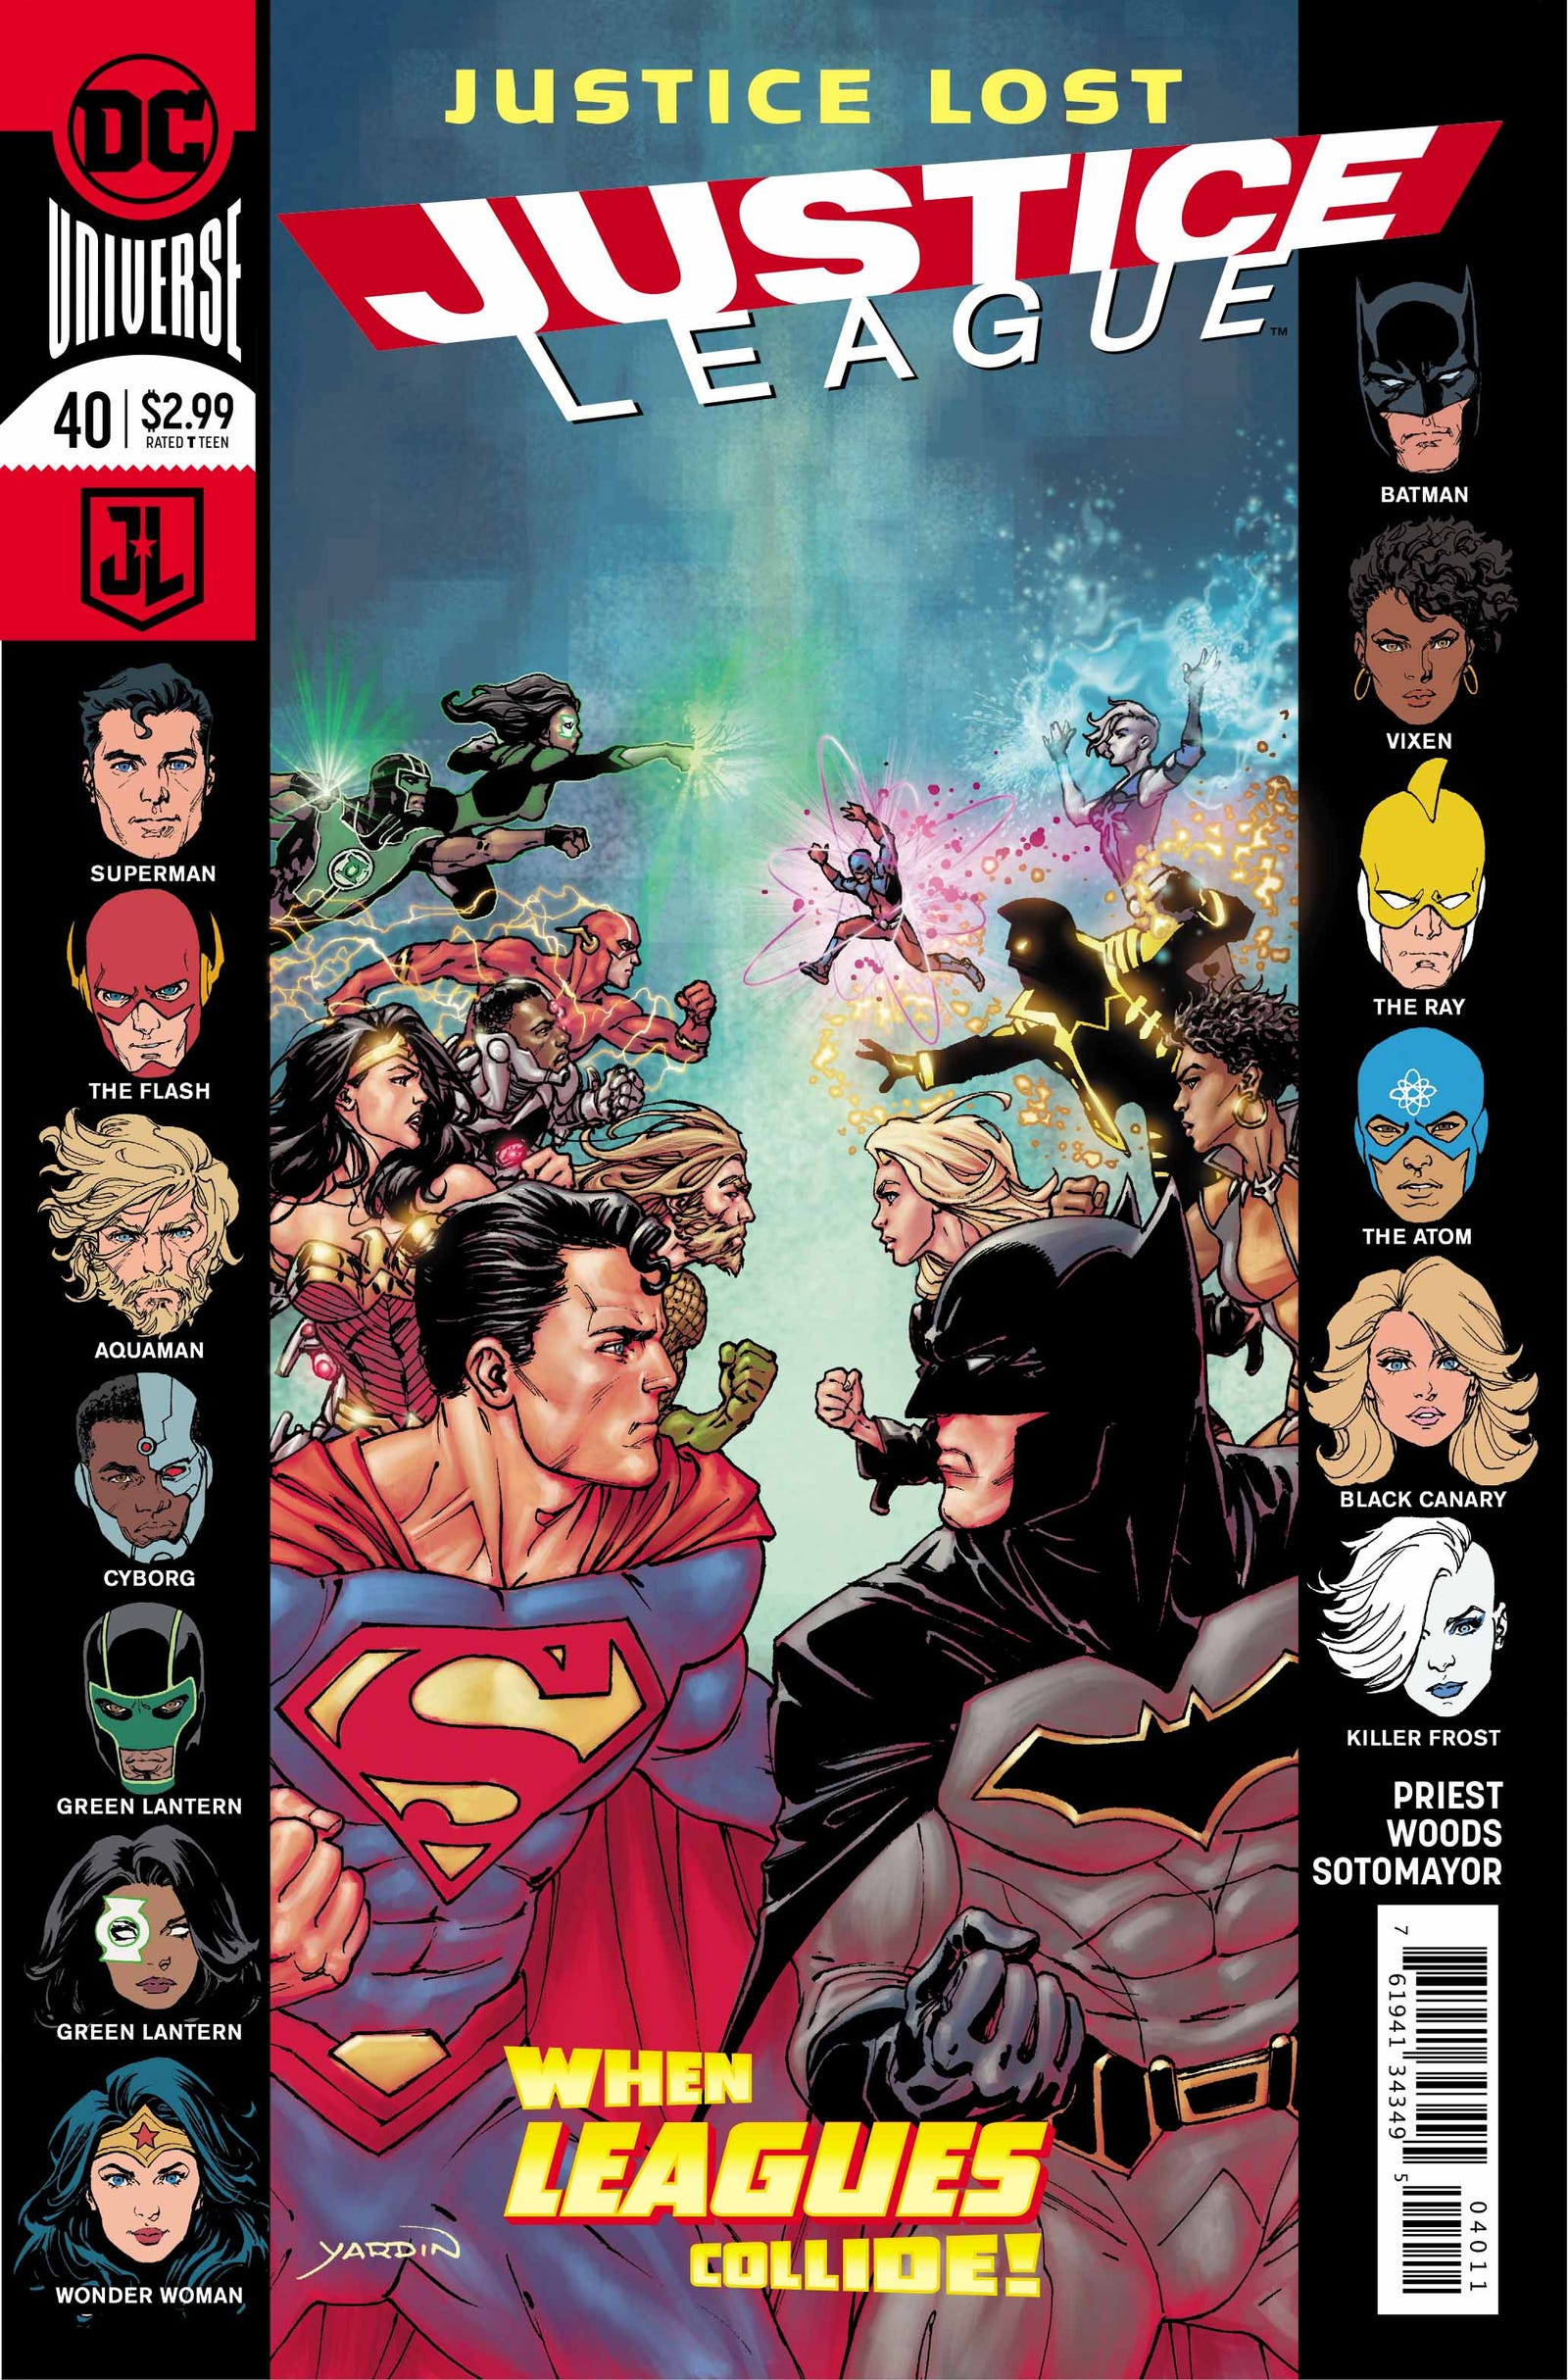 Preview pages of Justice League #40, by Christopher Priest, Pete Woods, Chris Sotomayor, Willie Schu, and David Yardin. All images: DC Comics